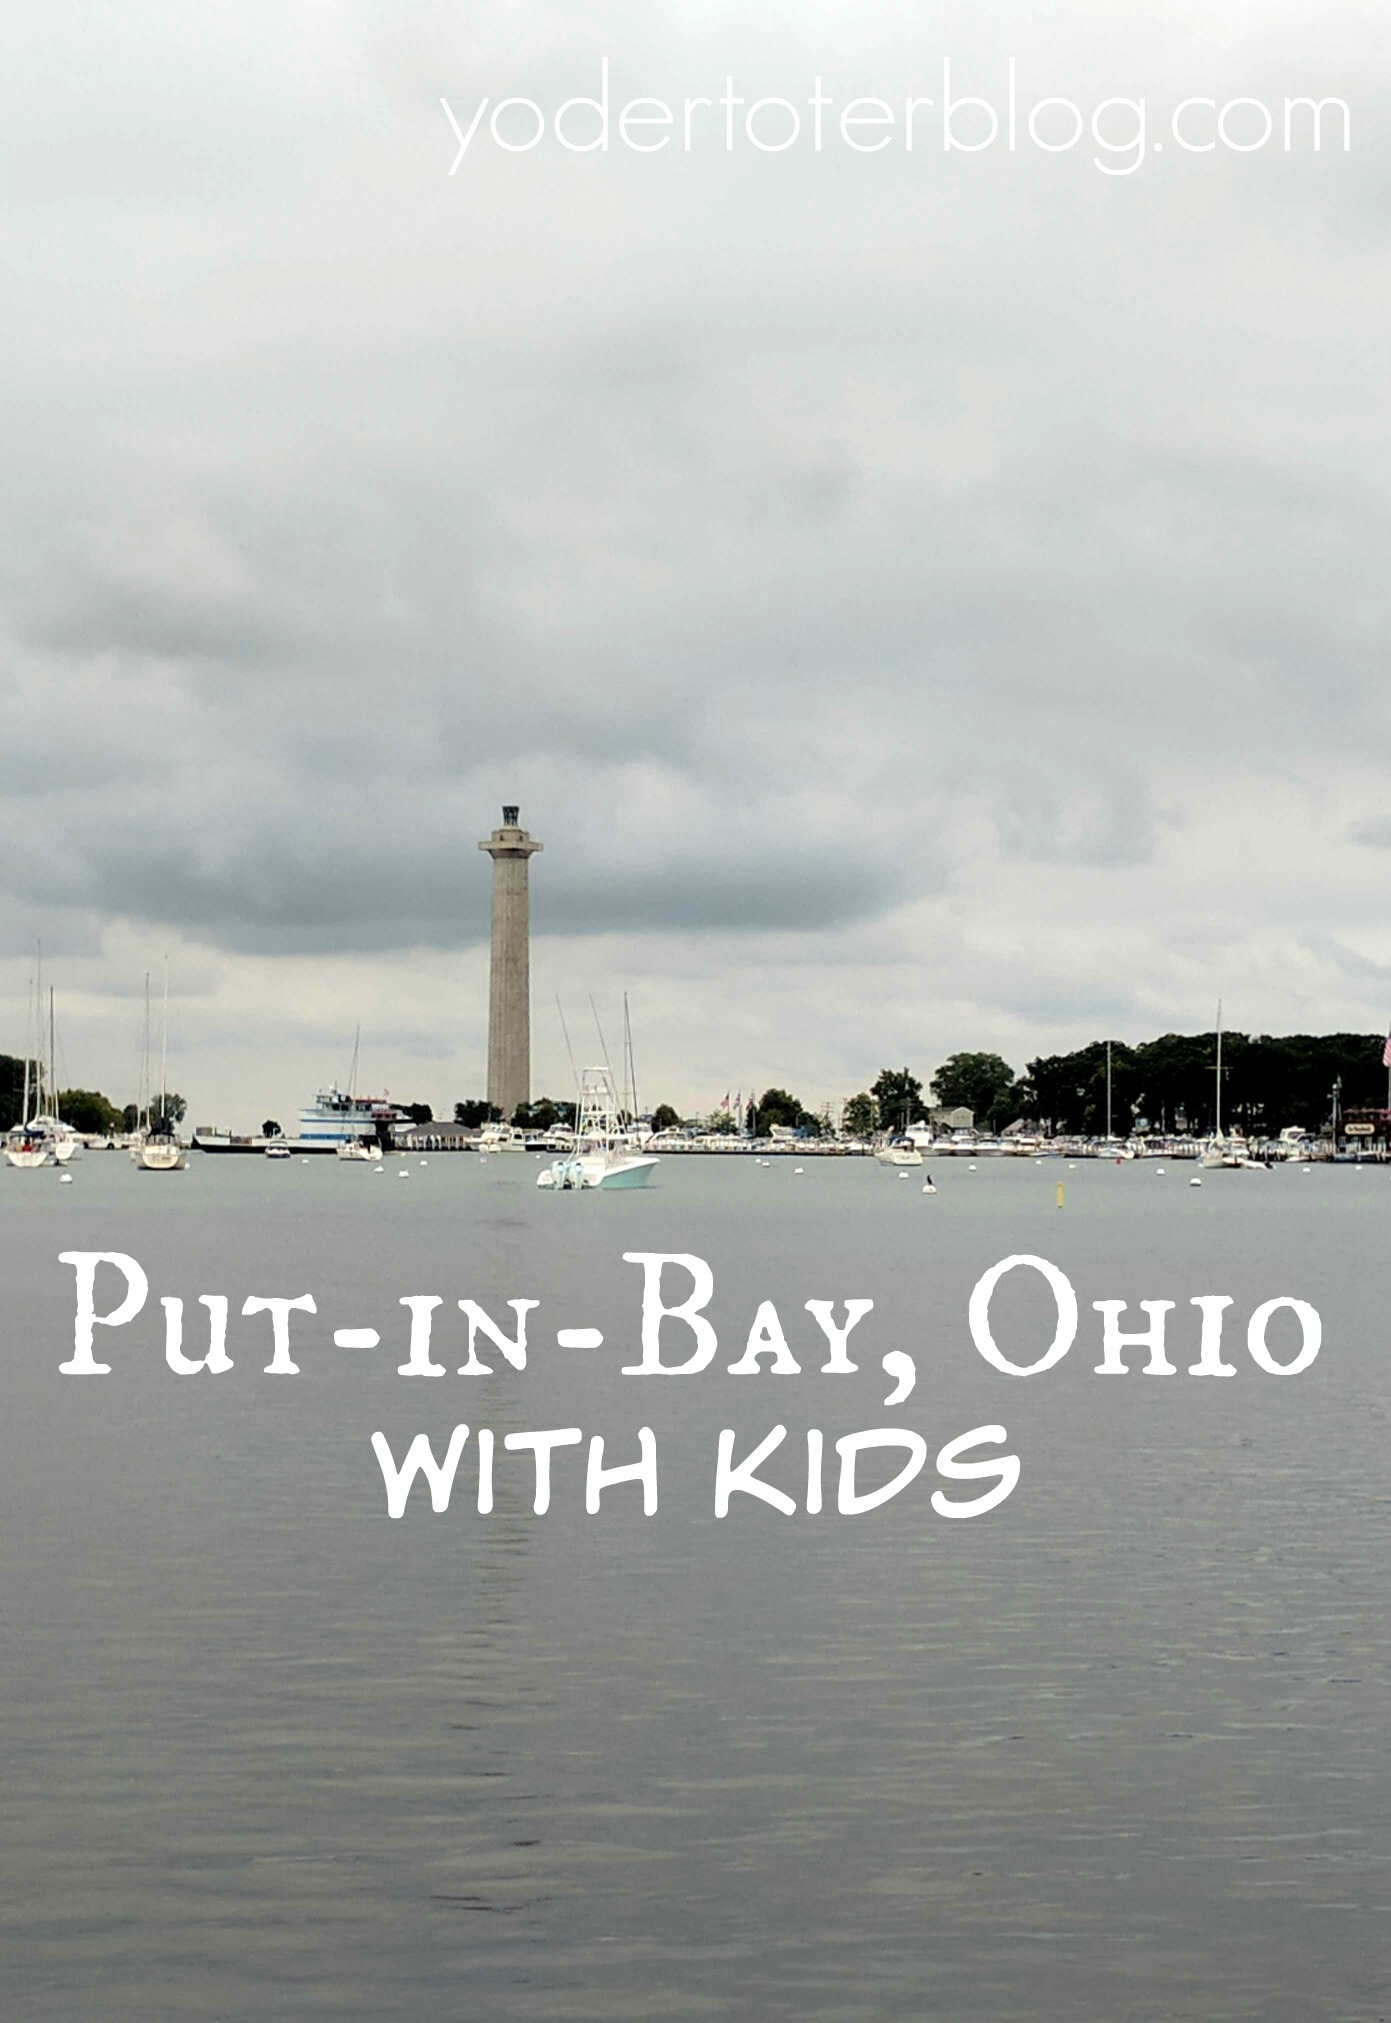 Put-in-Bay, Ohio with kids- A family-friendly day at Put-in-Bay